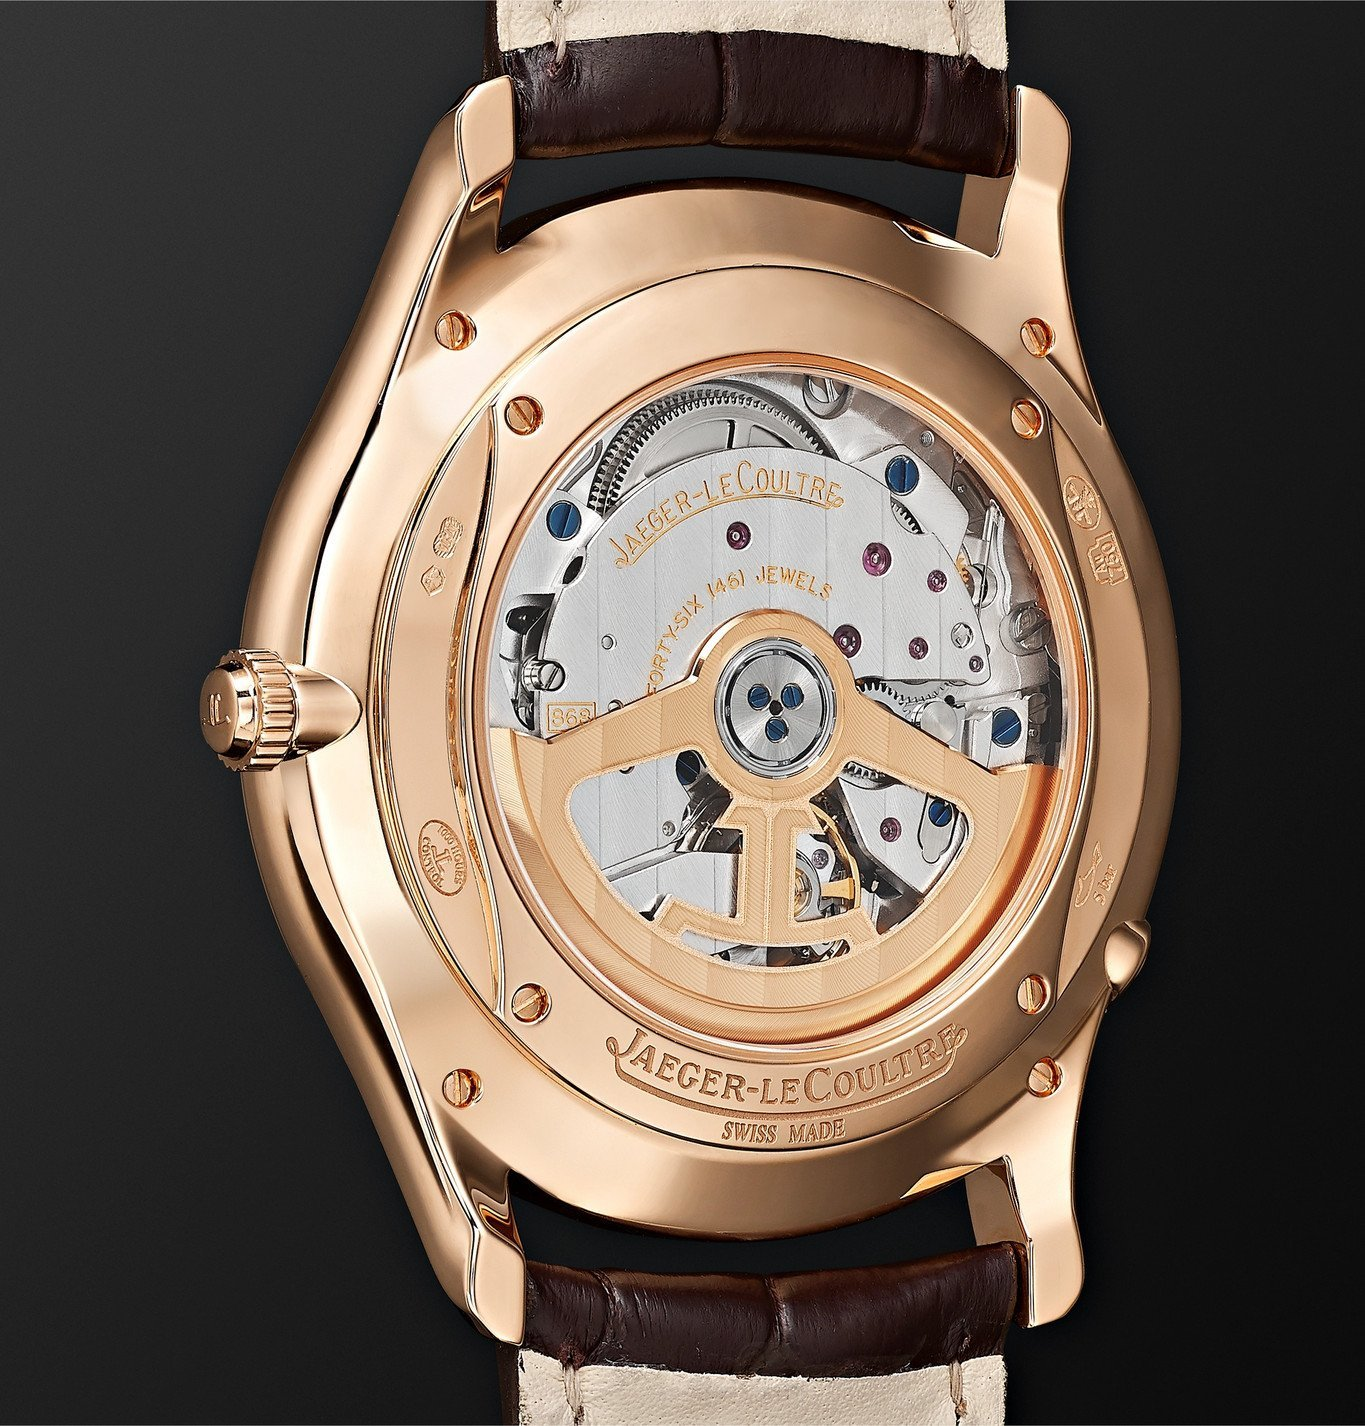 Jaeger-LeCoultre - Master Ultra Thin Perpetual Automatic 39mm 18-Karat Rose Gold and Alligator Watch, Ref. No. 1302520 - Neutrals